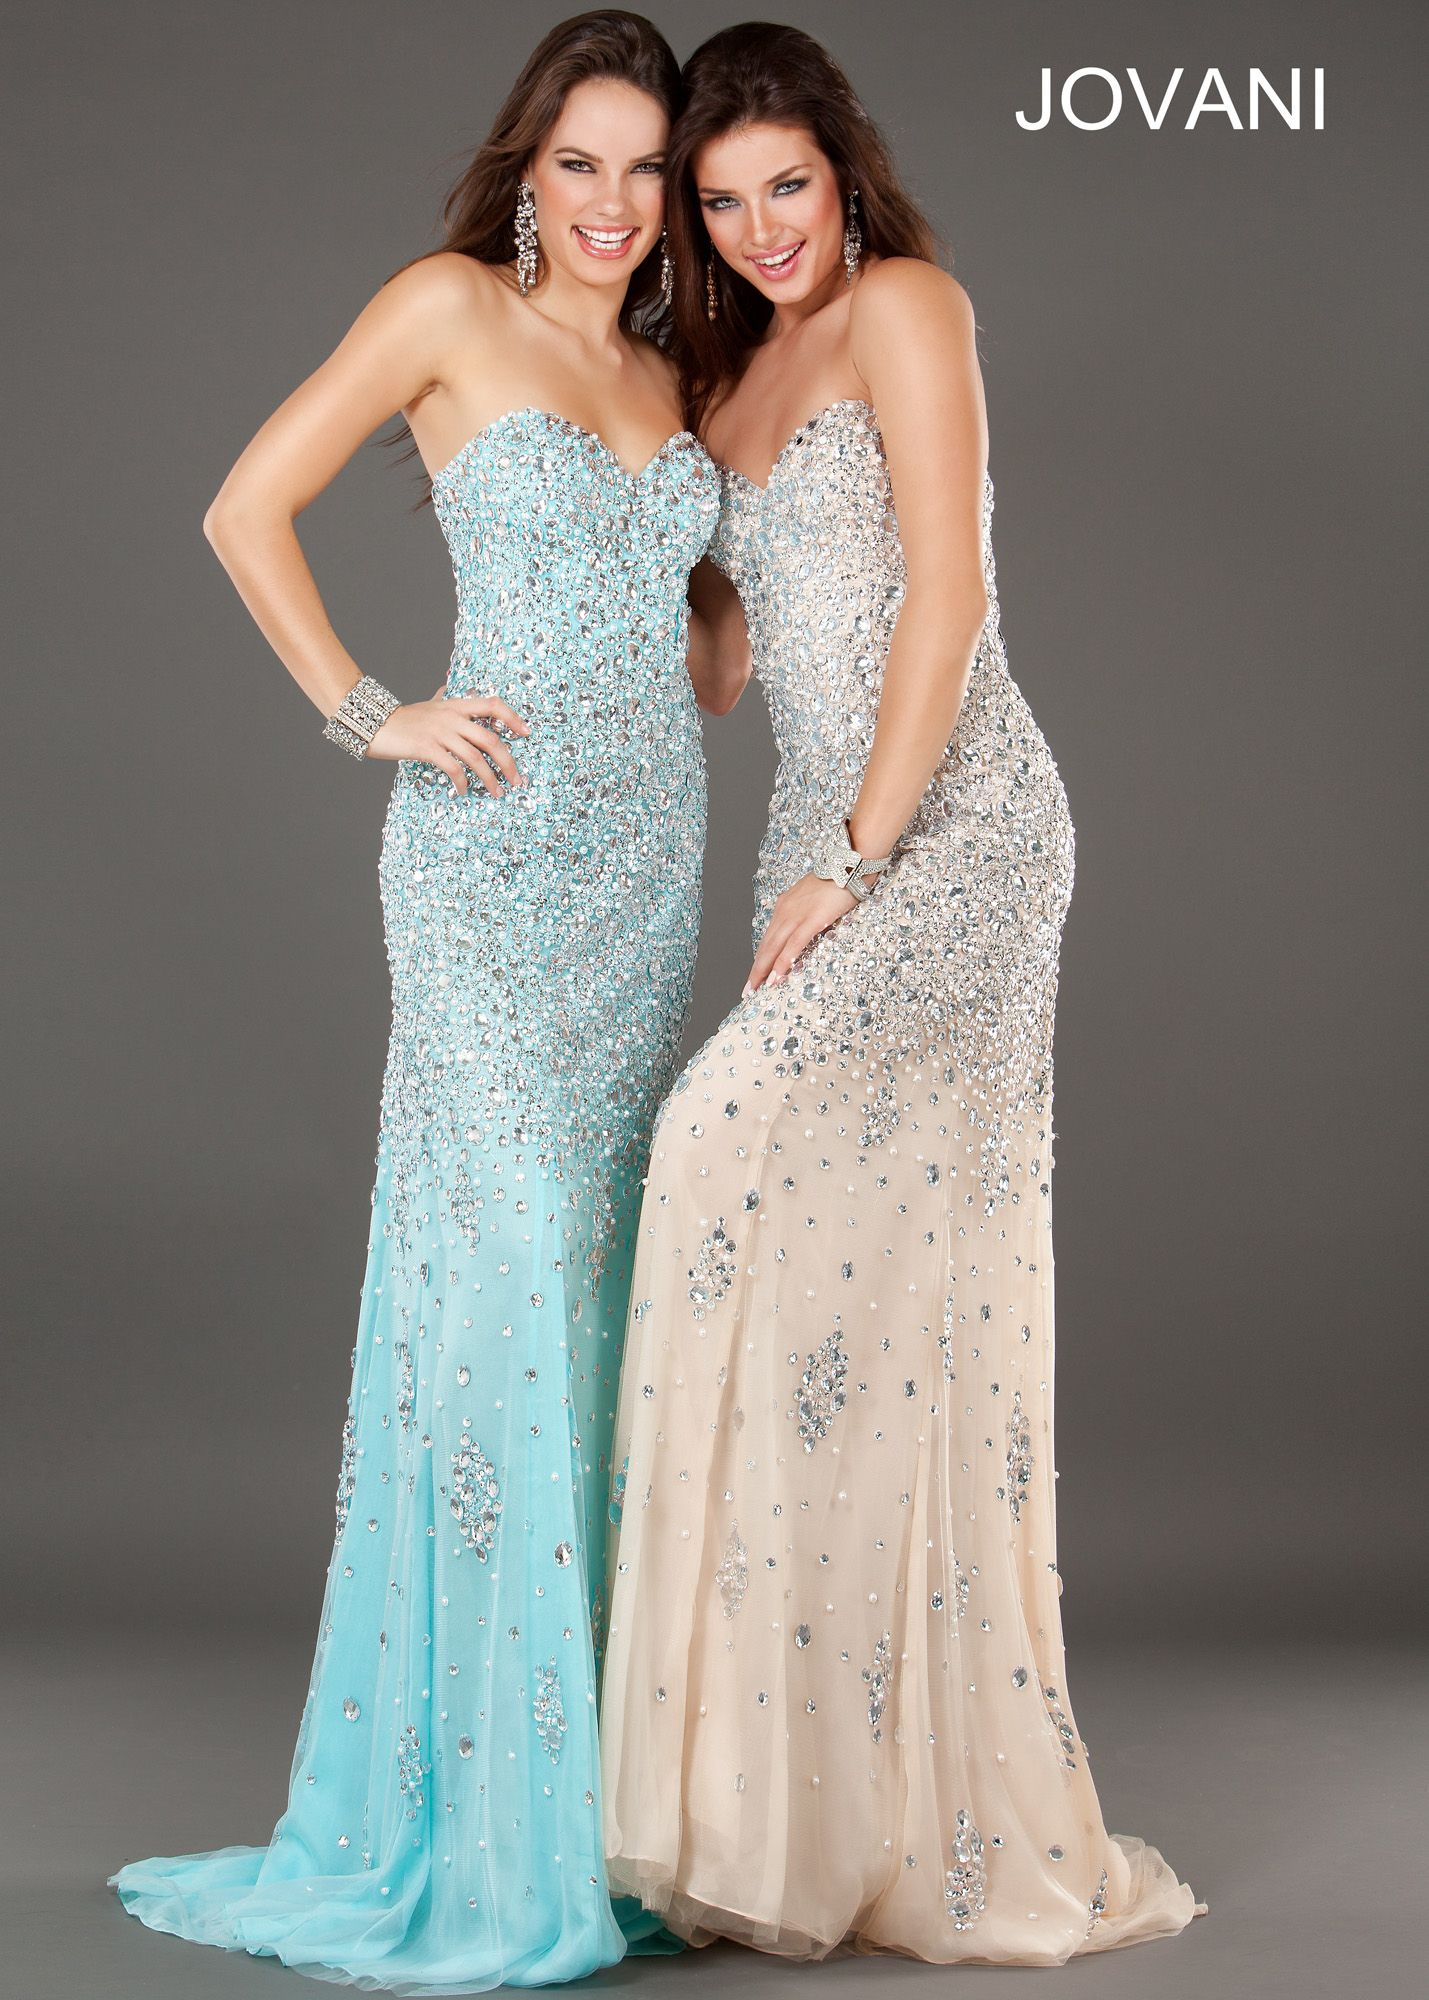 Fine Rachel Berry Prom Dress Gallery - Wedding Ideas - memiocall.com